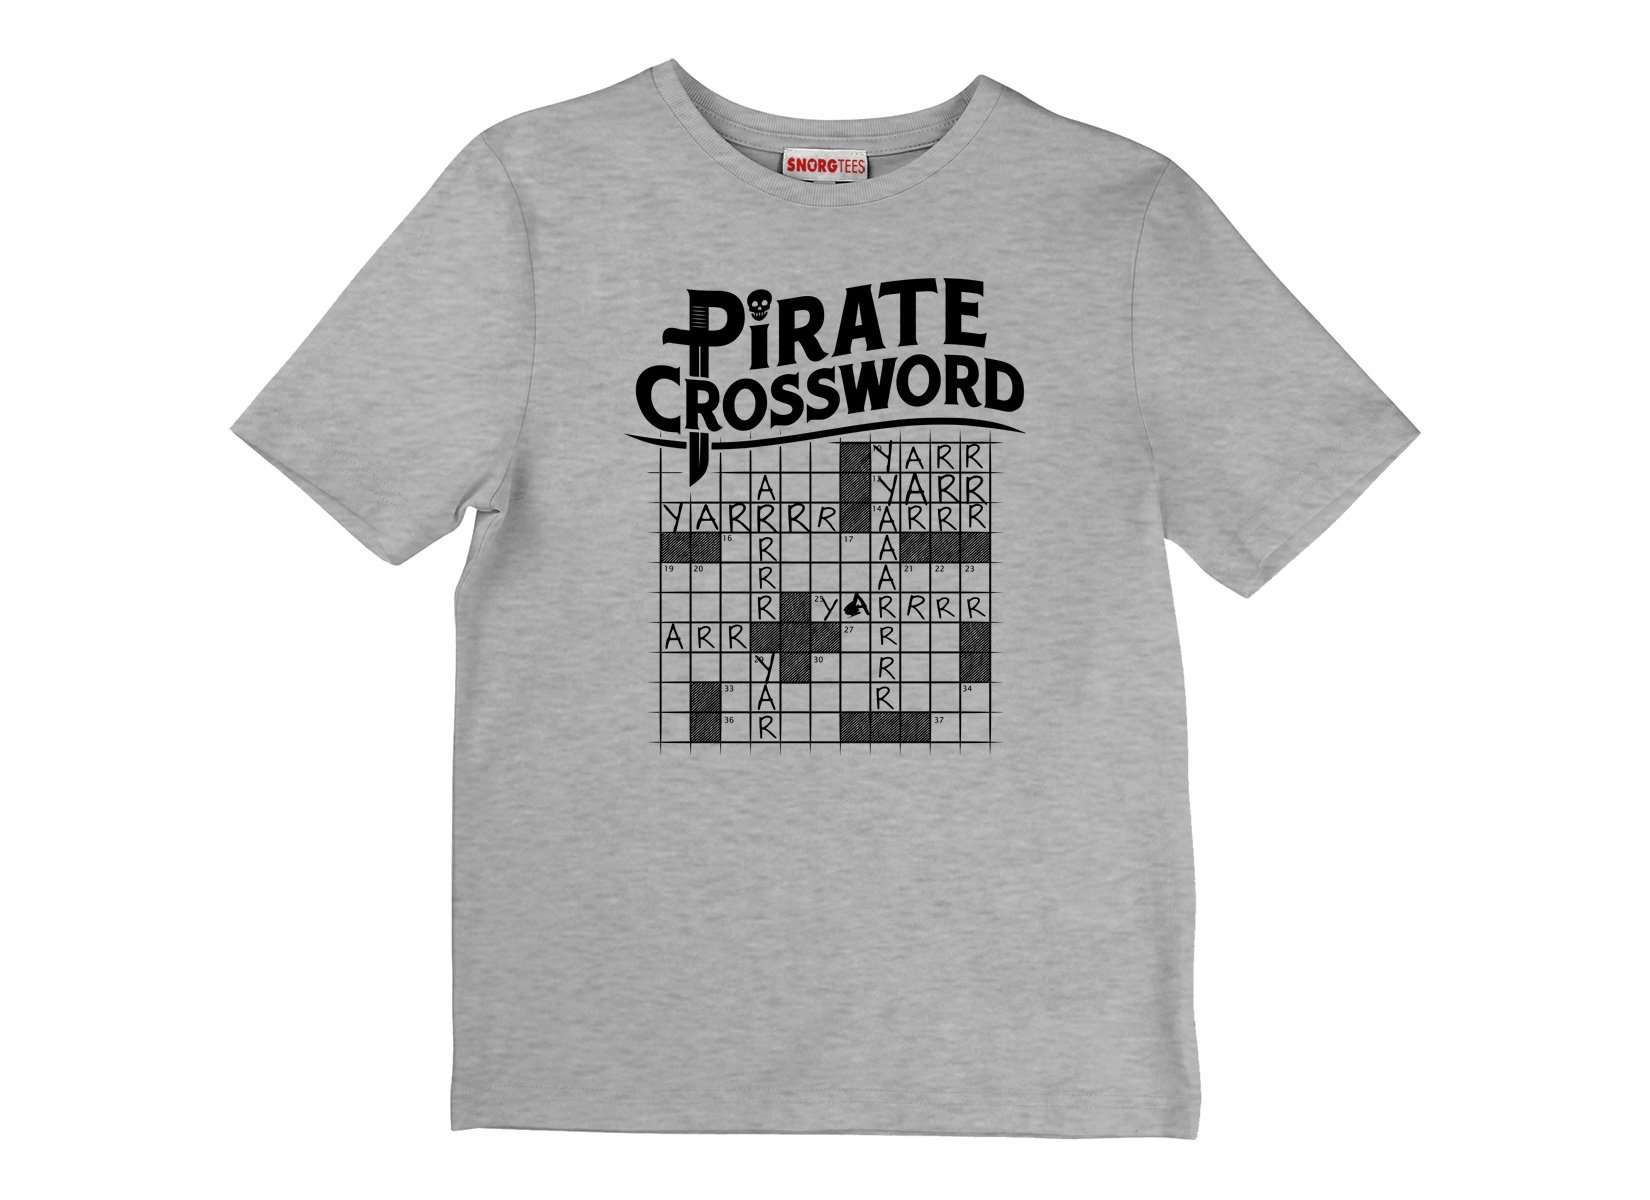 Pirate Crossword on Kids T-Shirt